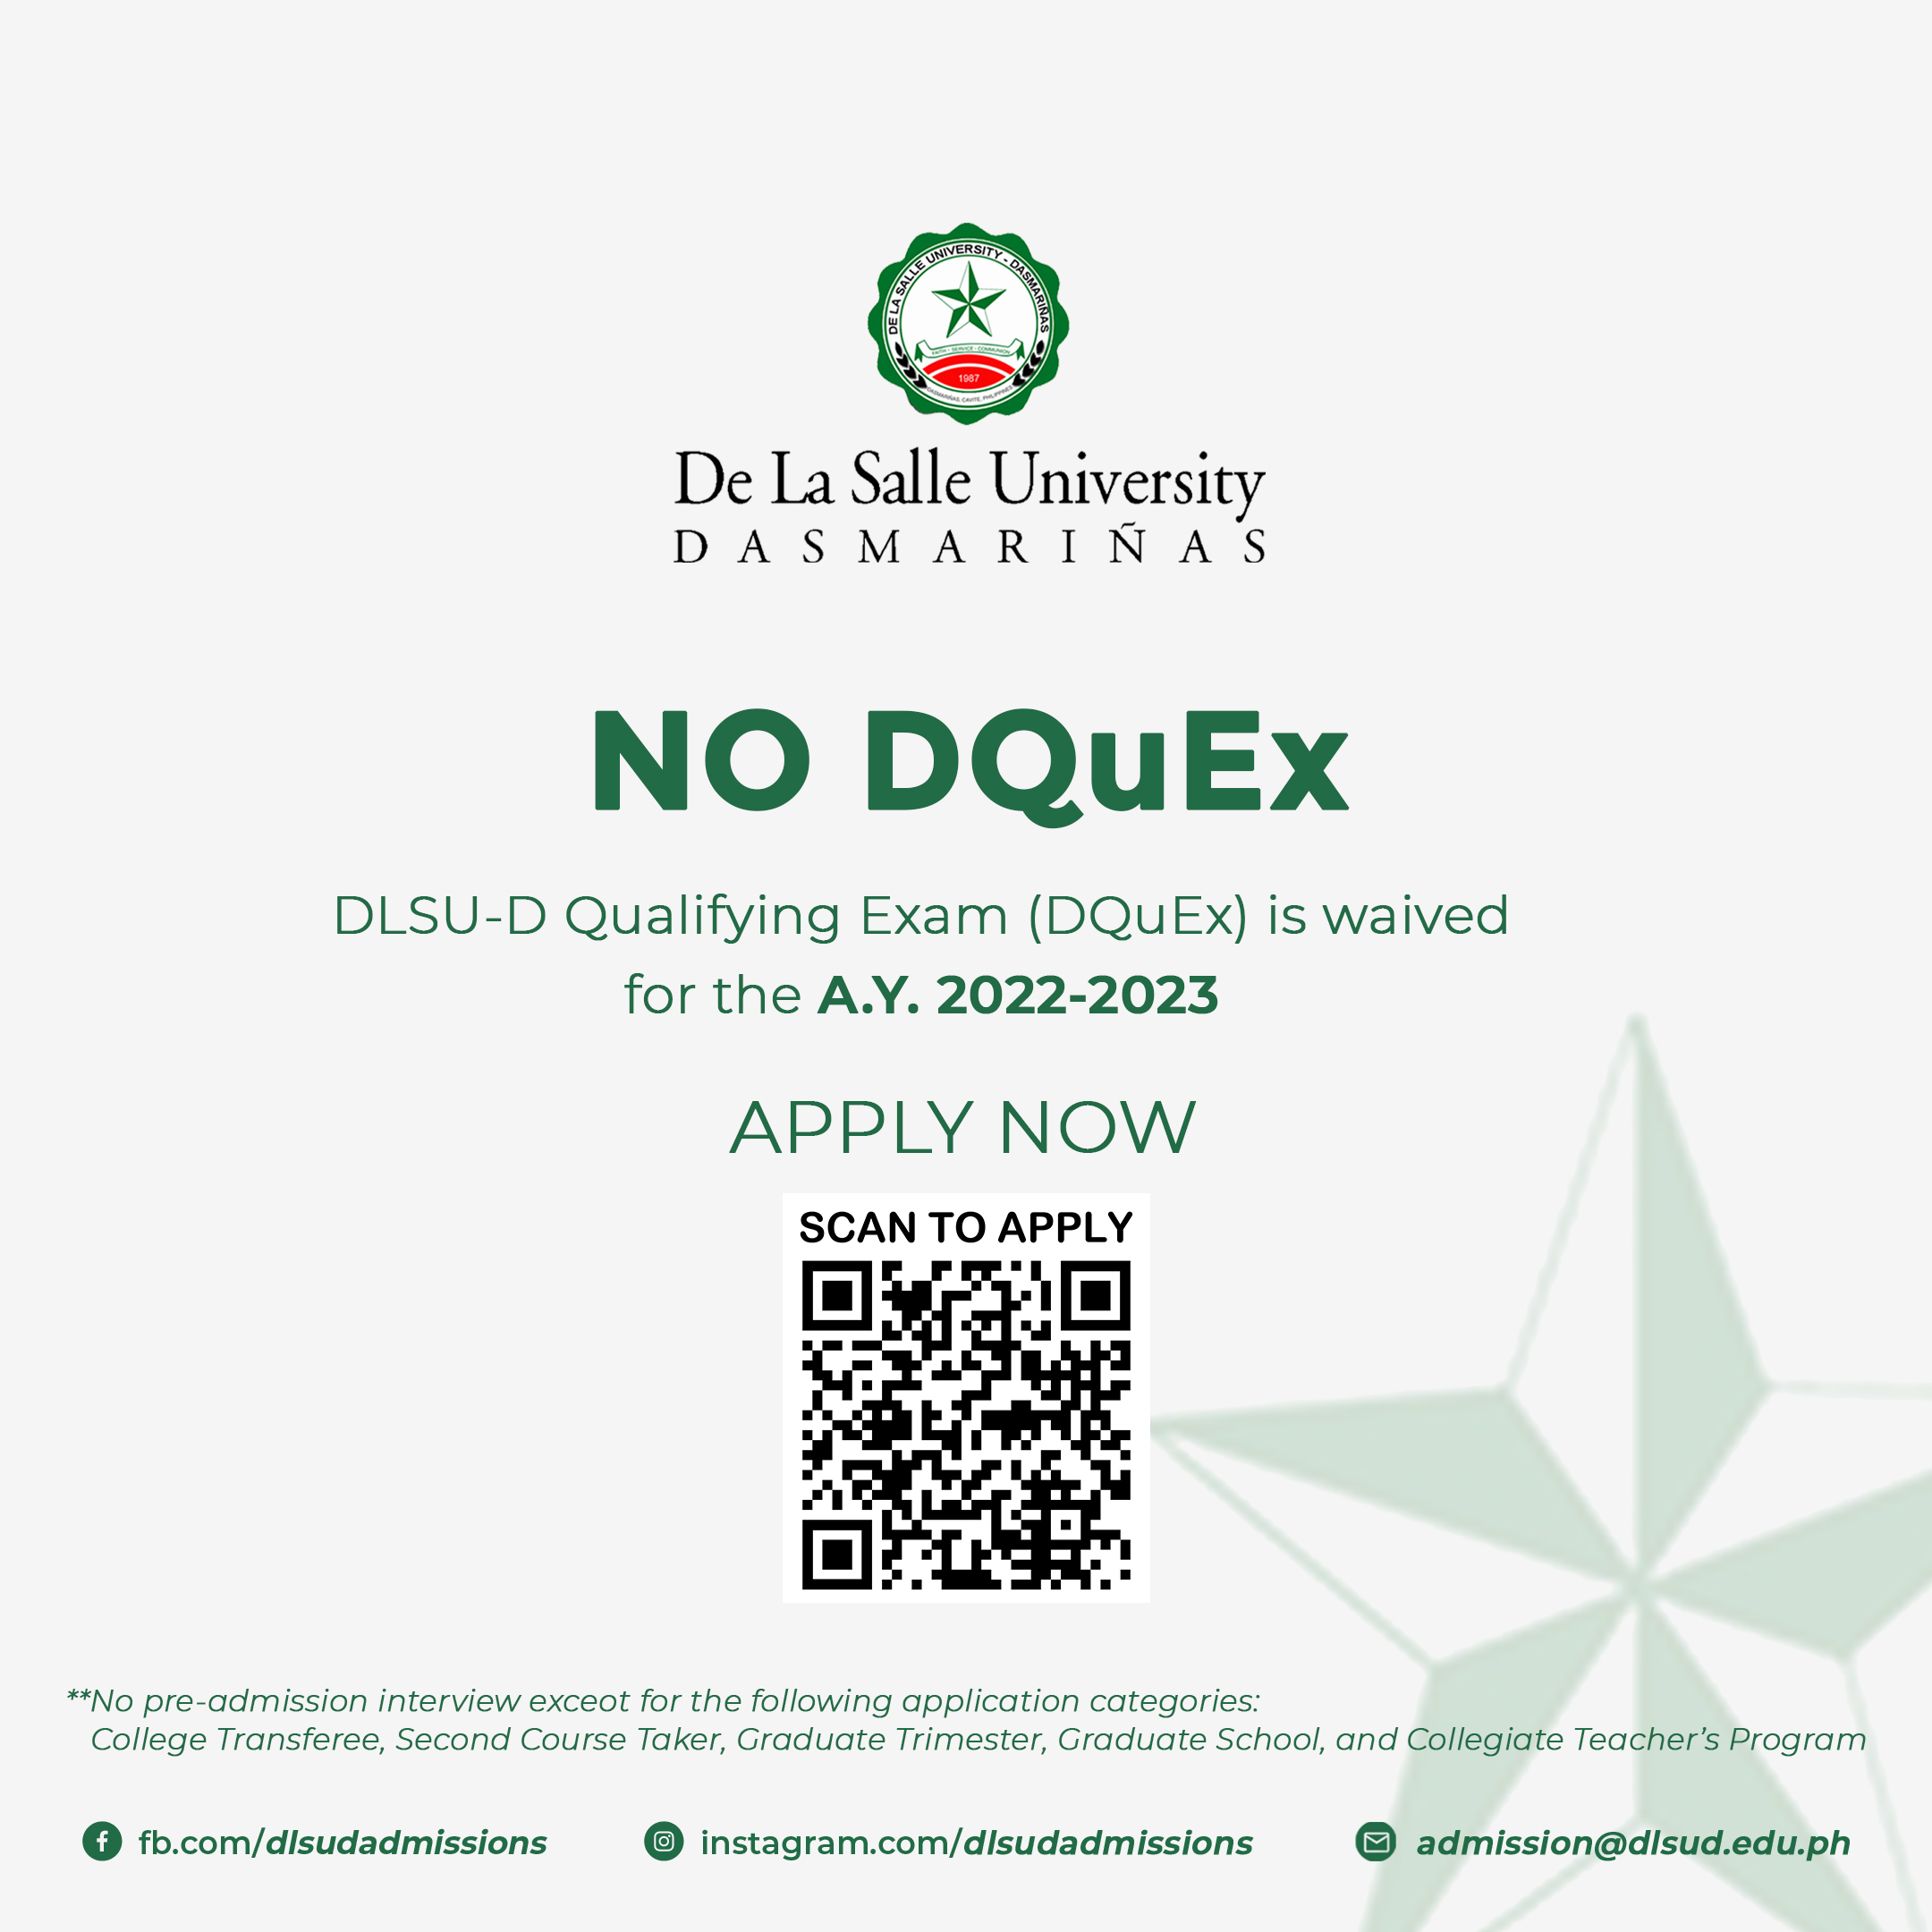 DLSU-D No DQuEX, No Interview